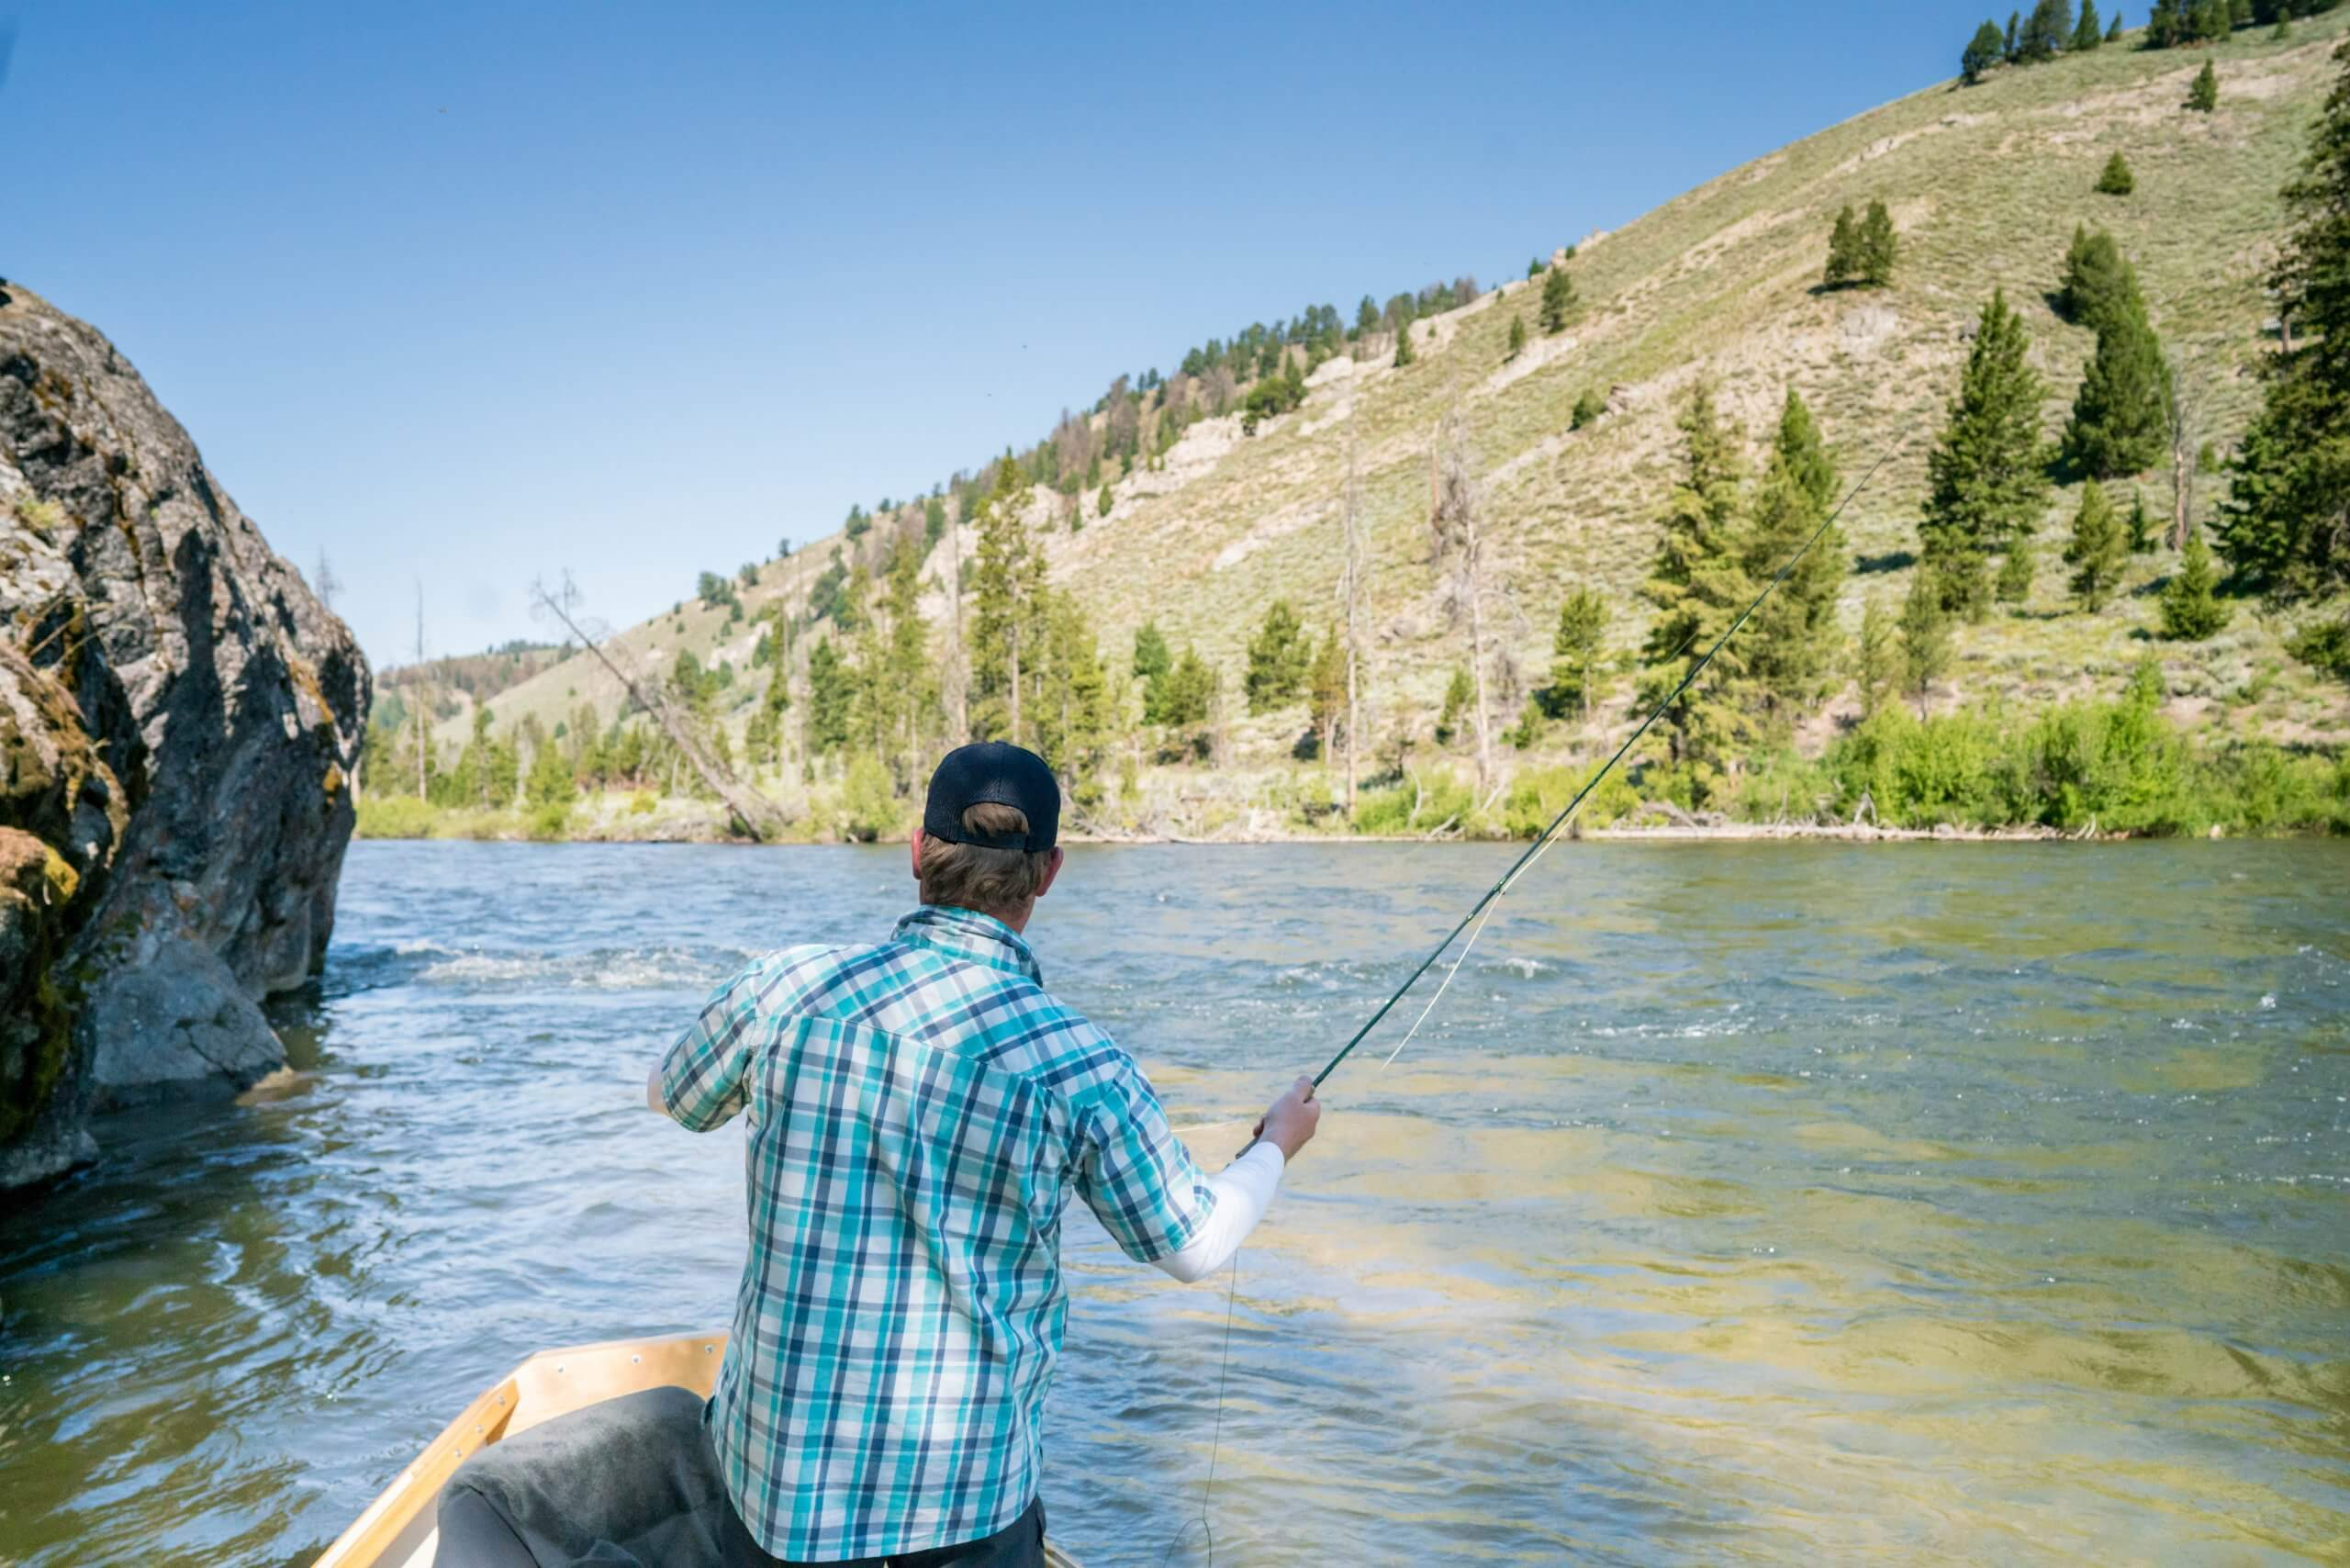 Fly fishing on the Salmon River.